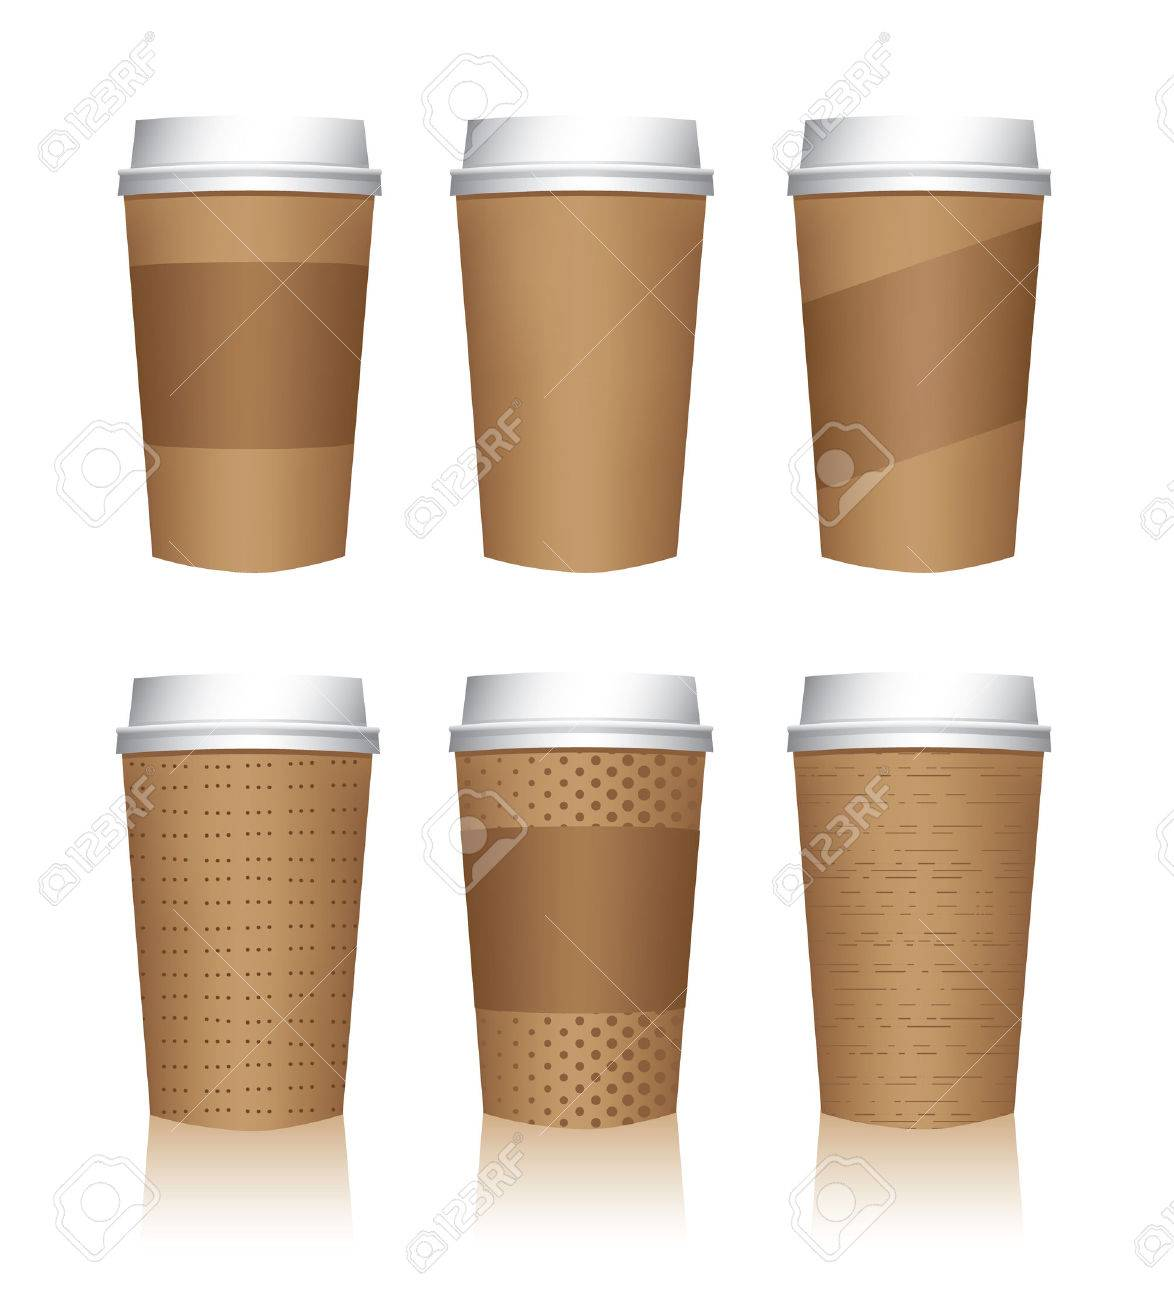 coffee cup templates royalty free cliparts vectors and stock